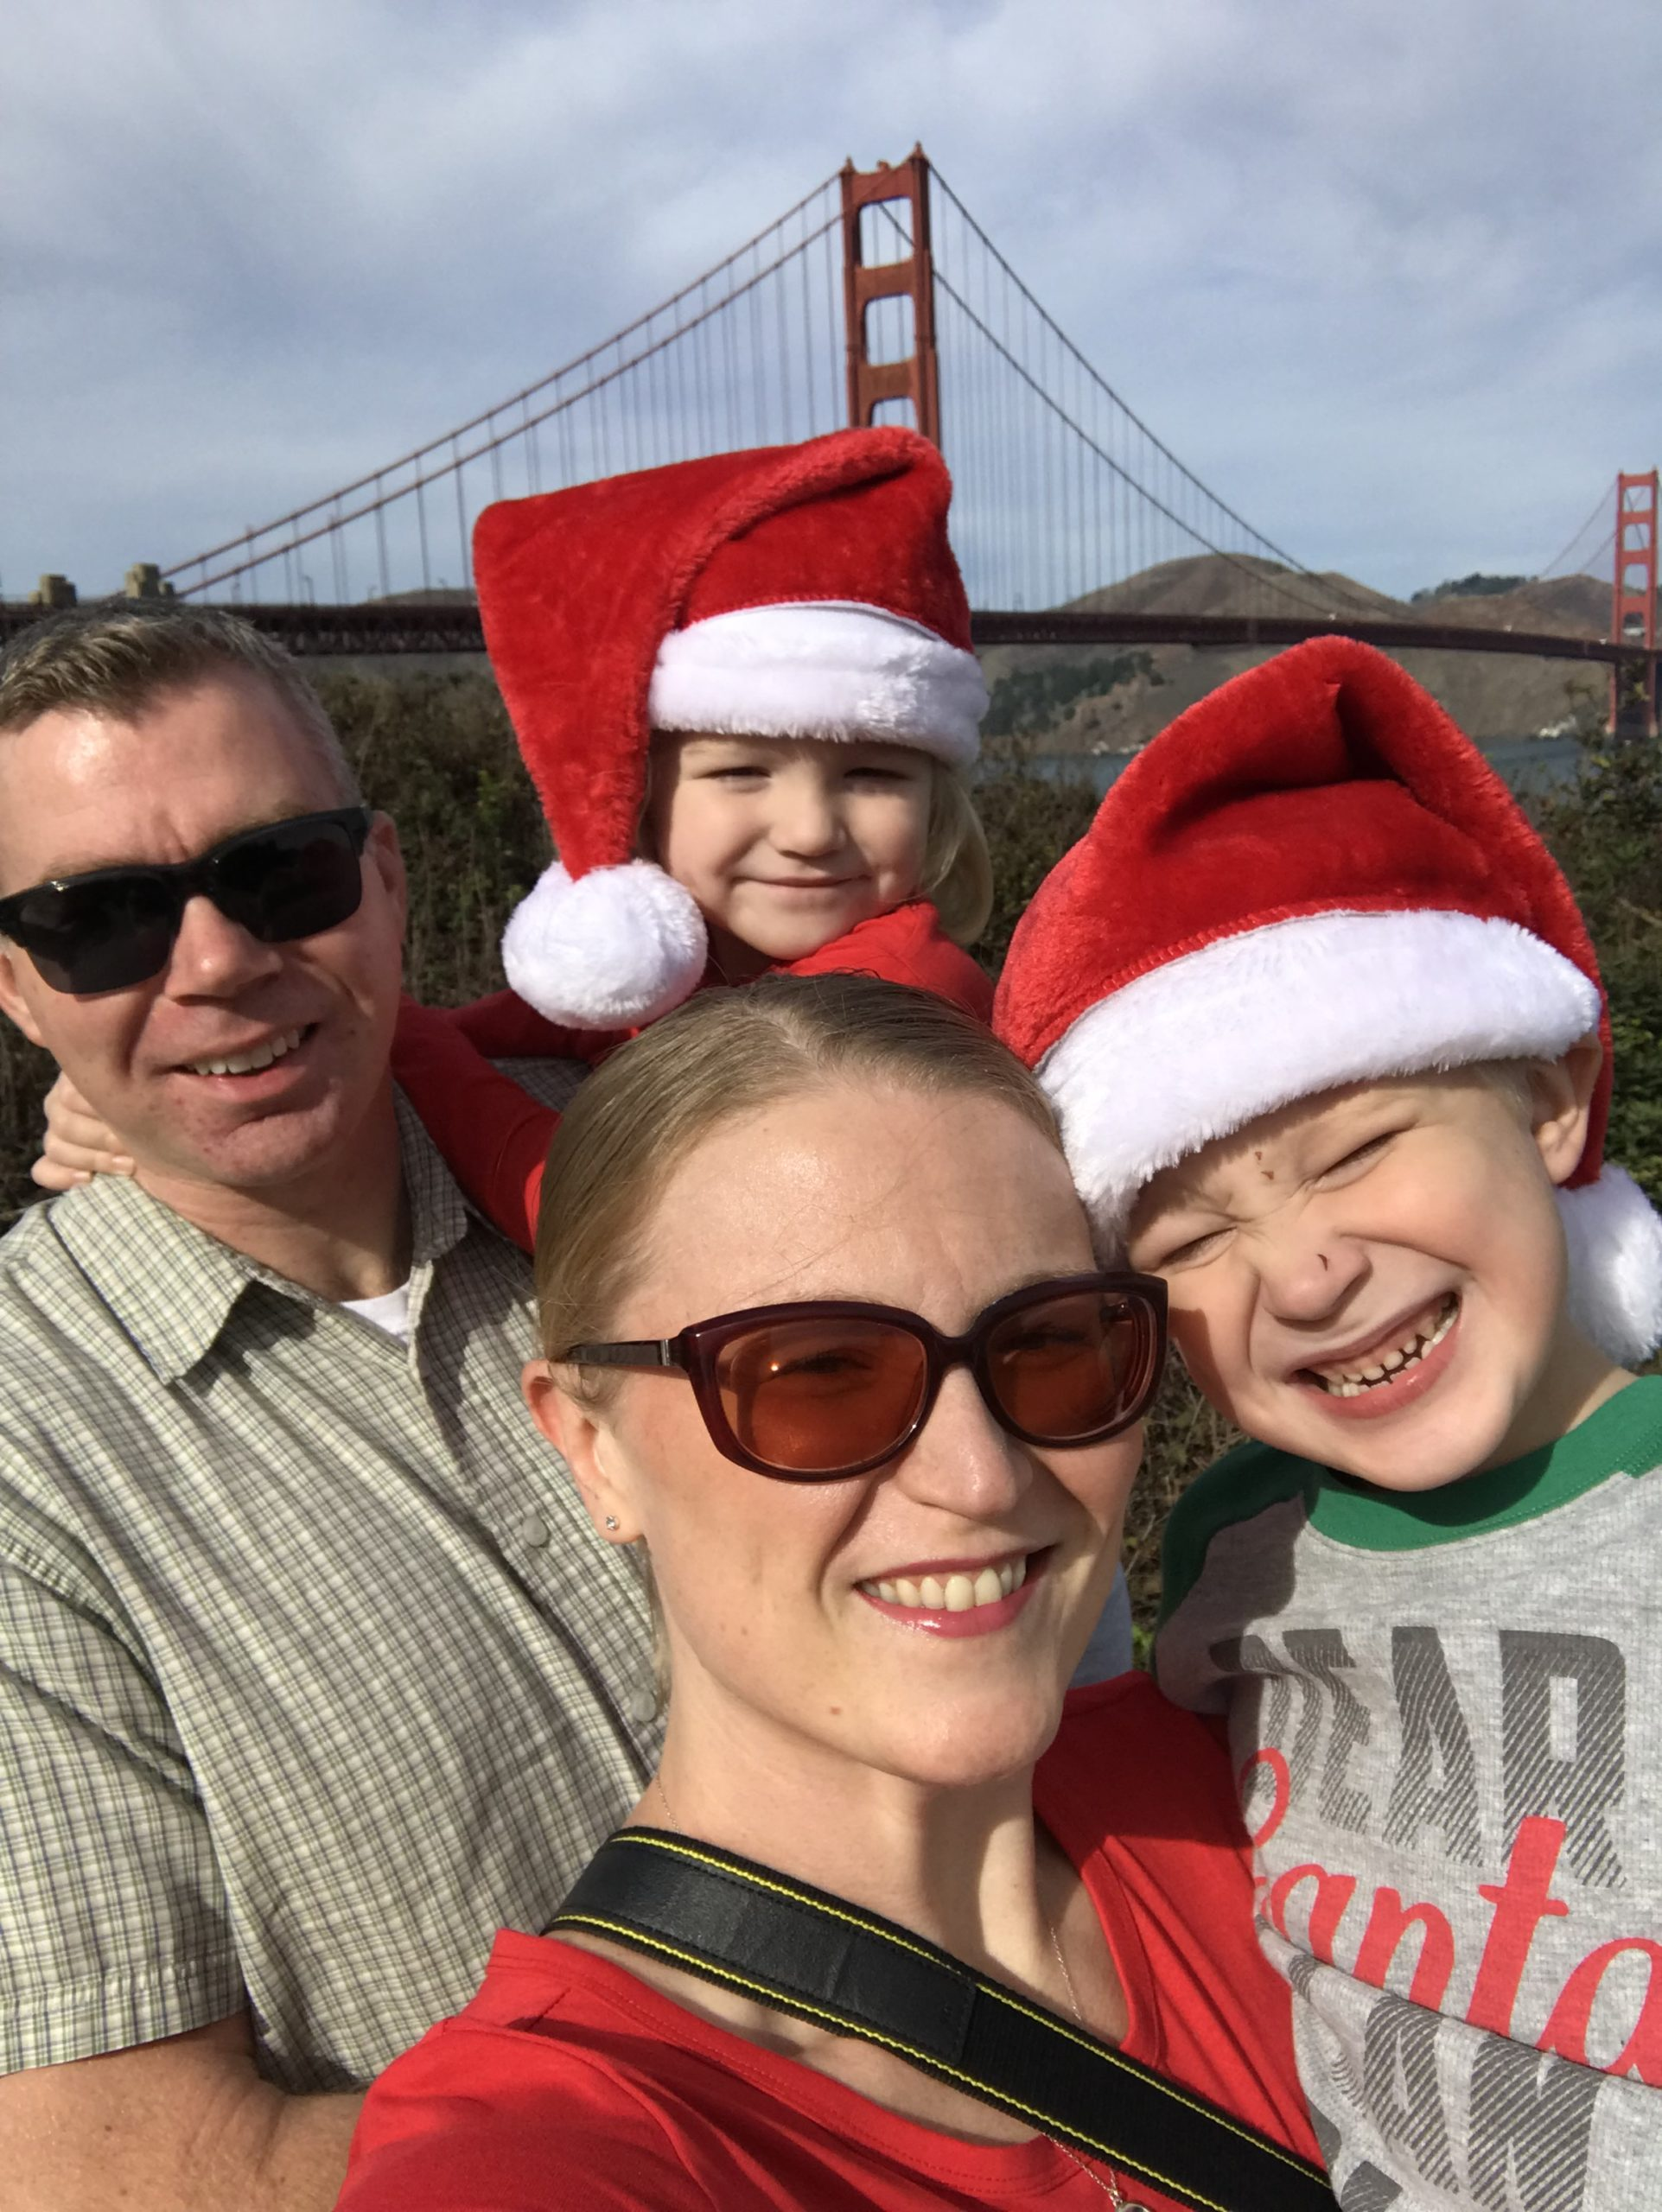 military family wearing holiday attire